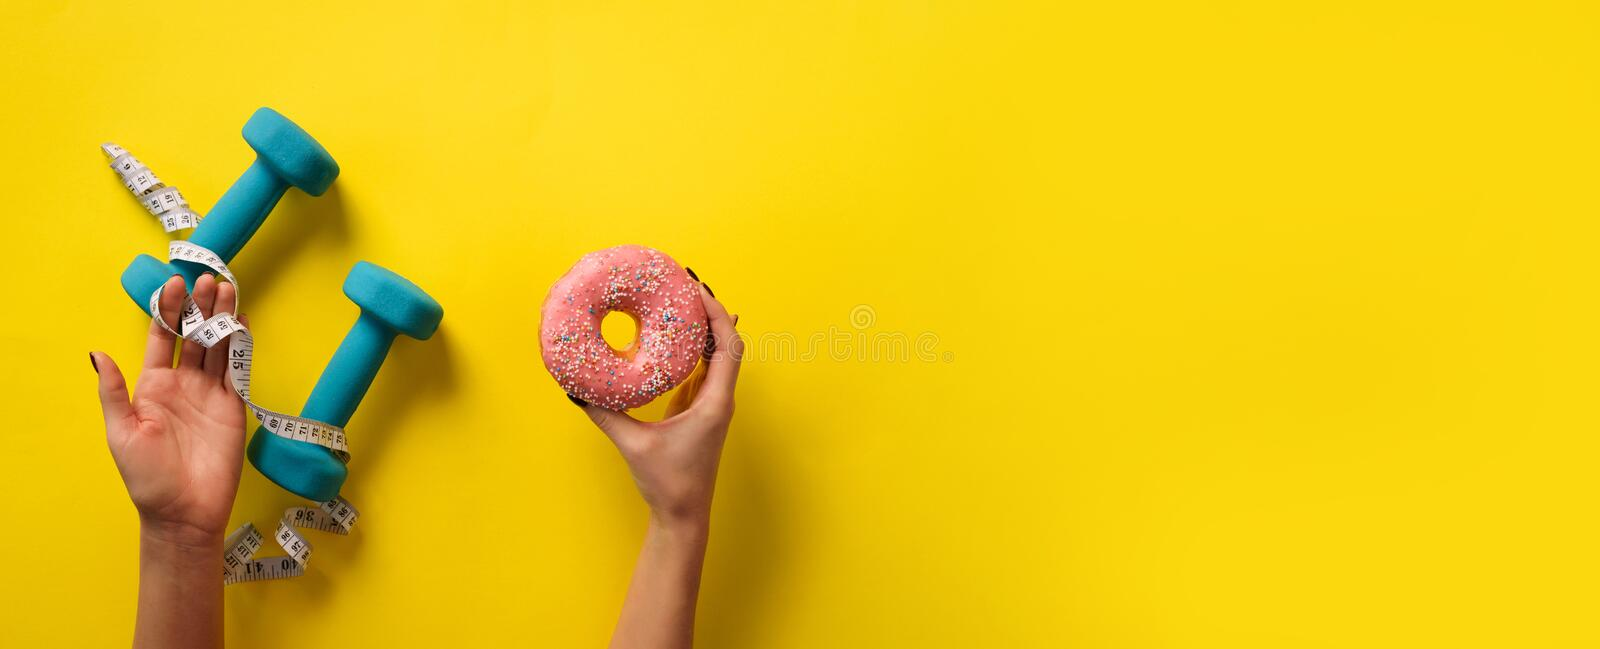 Female hand holding sweet donut, measuring tape, dumbbells over yellow background. Top view, flat lay. Weight lost, sport, fitness royalty free stock images